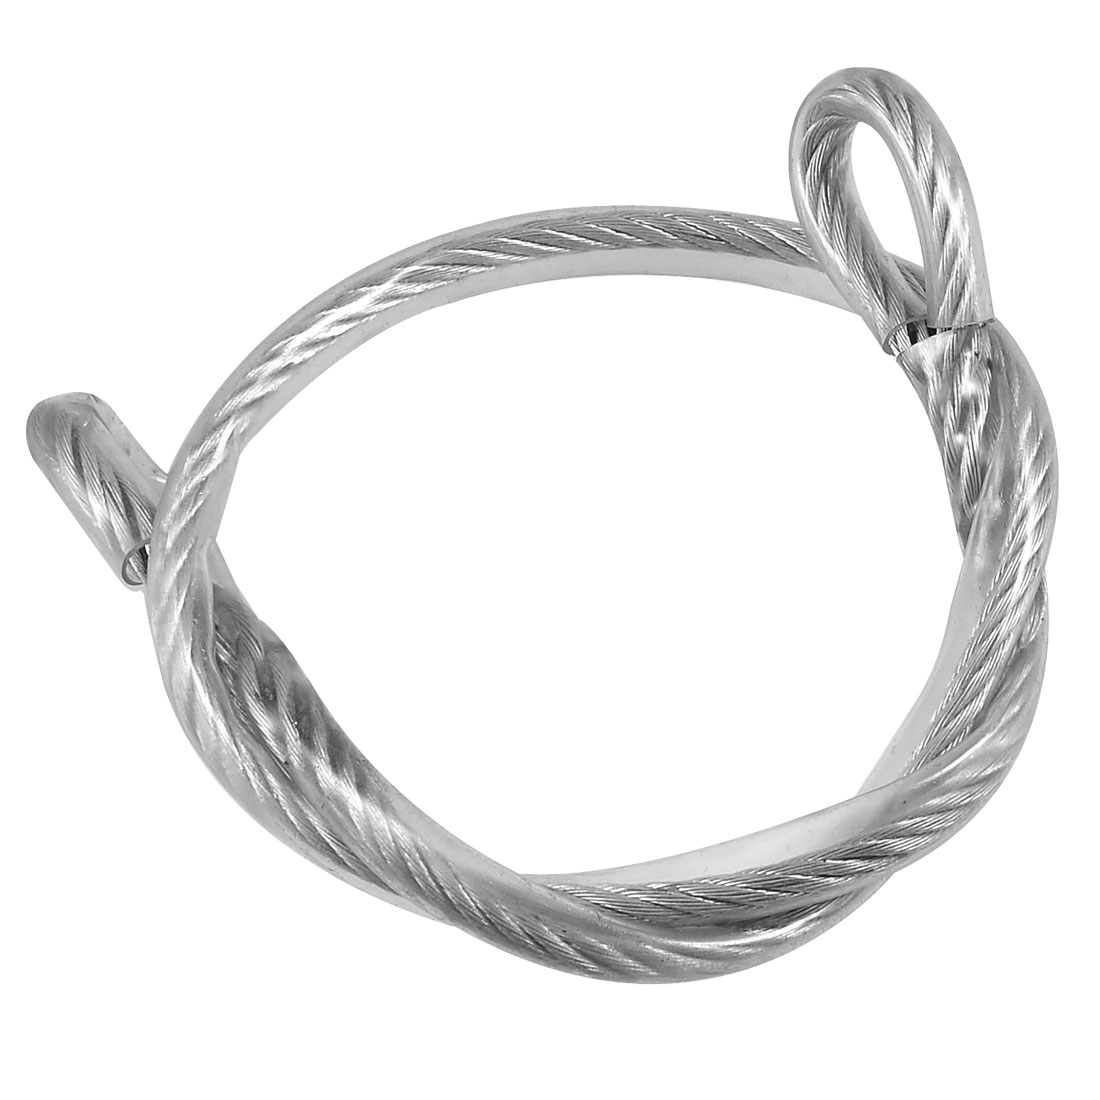 8mm x 80cm PVC Coated Ring End Steel Wire Rope